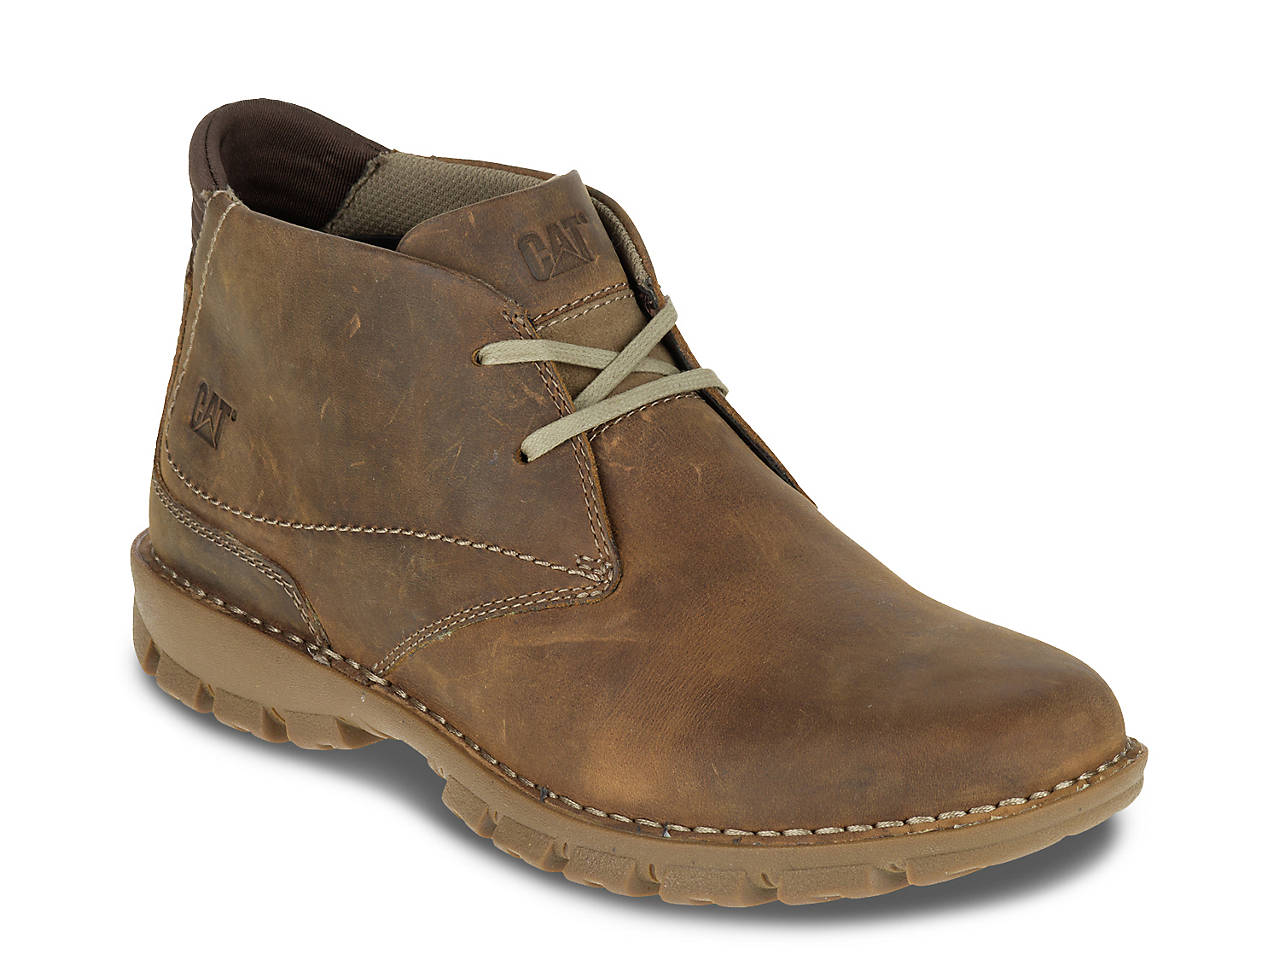 Caterpillar Mitch Chukka Boot(Men's) -Dark Beige Leather For Cheap Price hqPV5